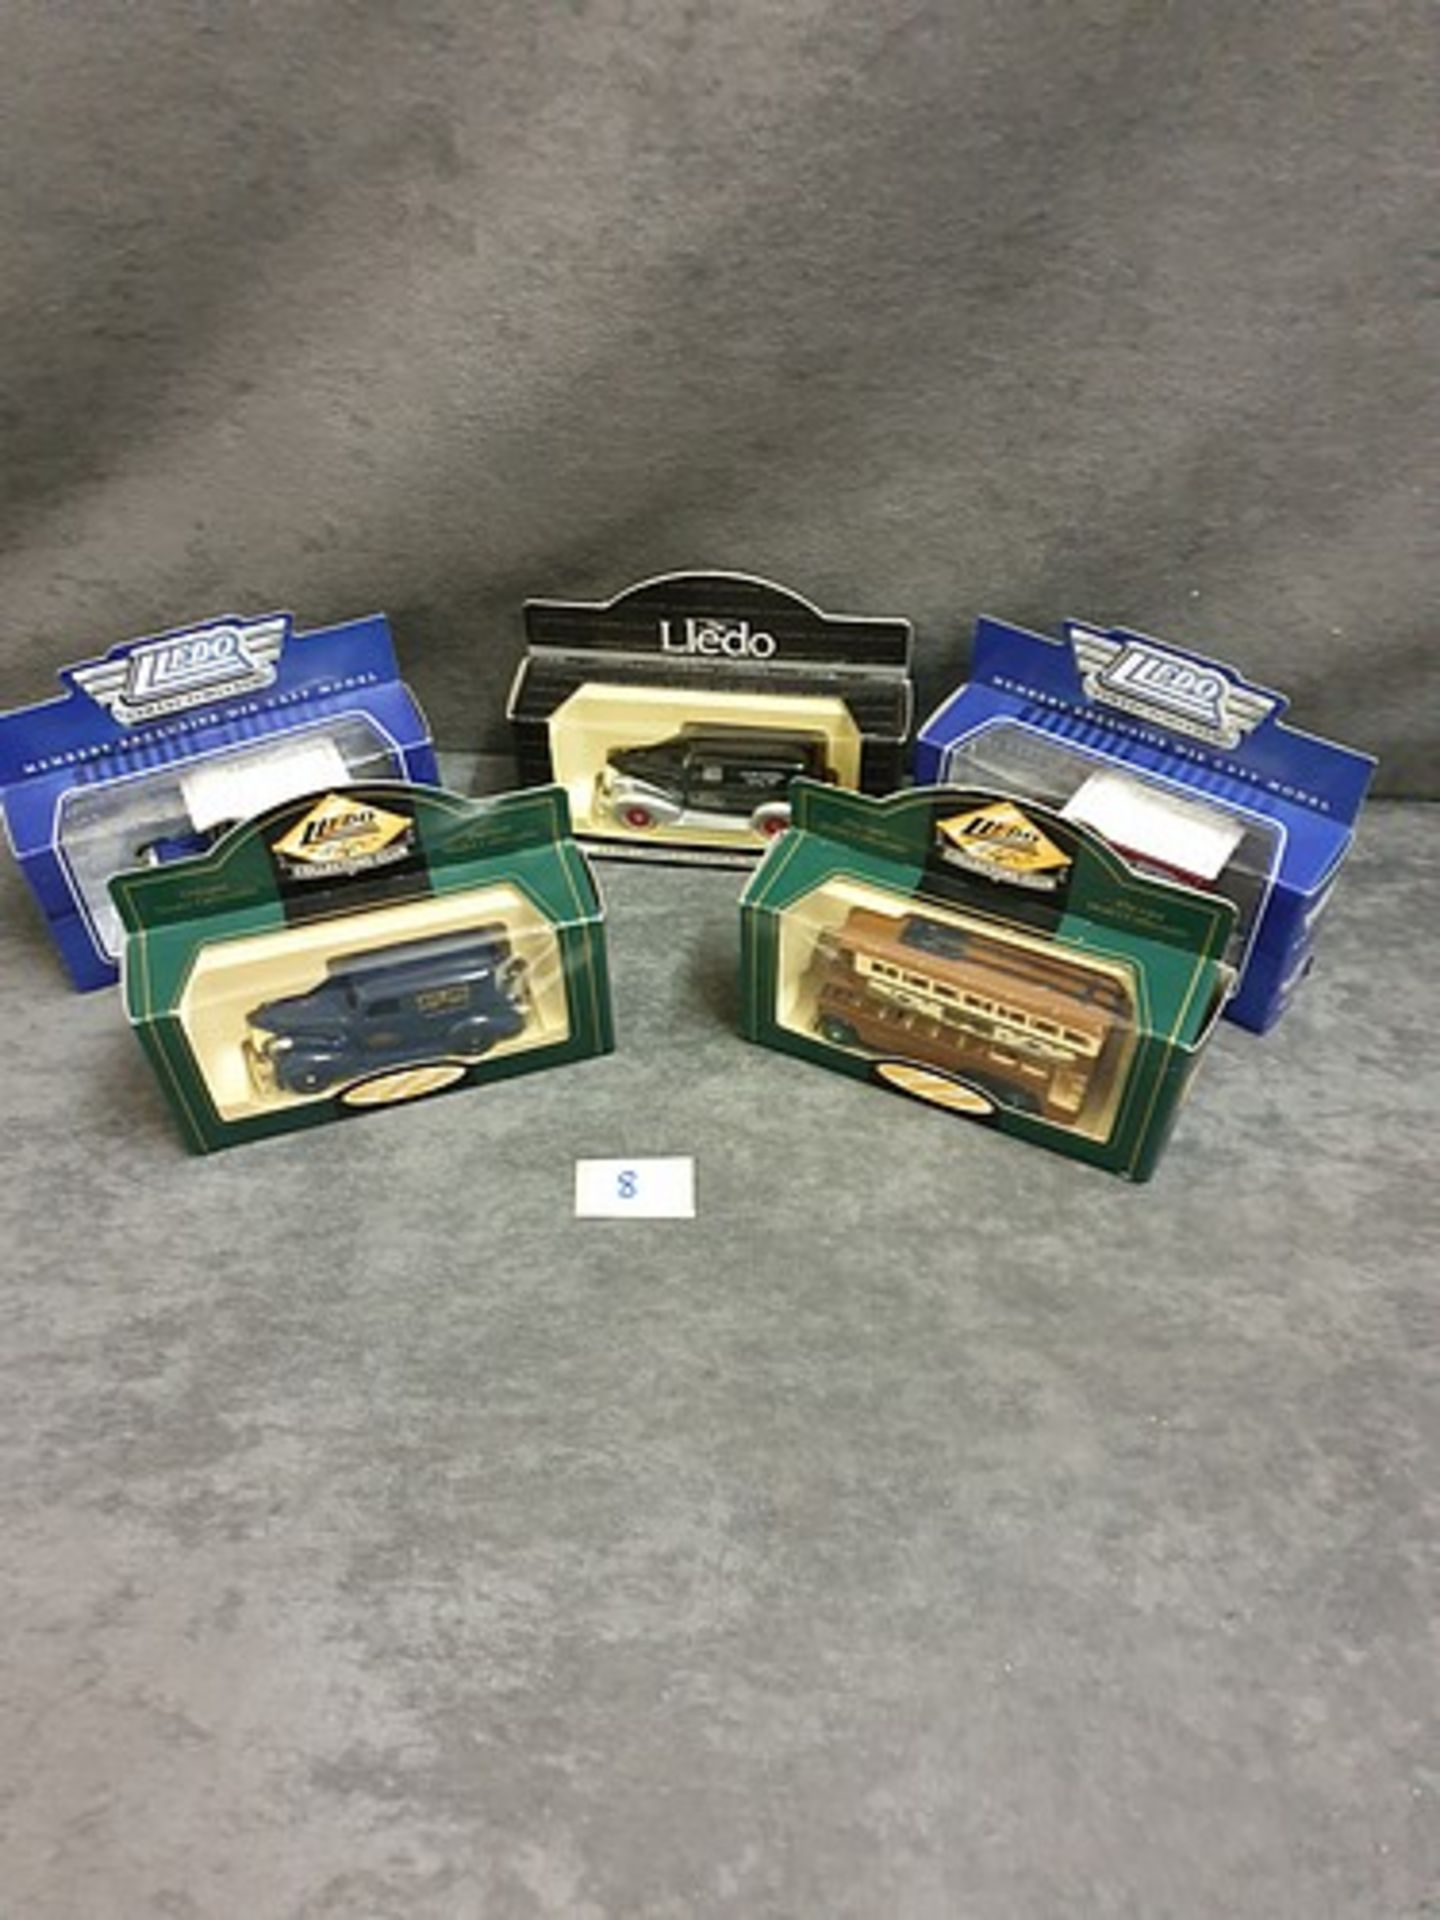 5x Lledo Diecast Vehicles Individually Boxed Advertising Lledo Days Gone.